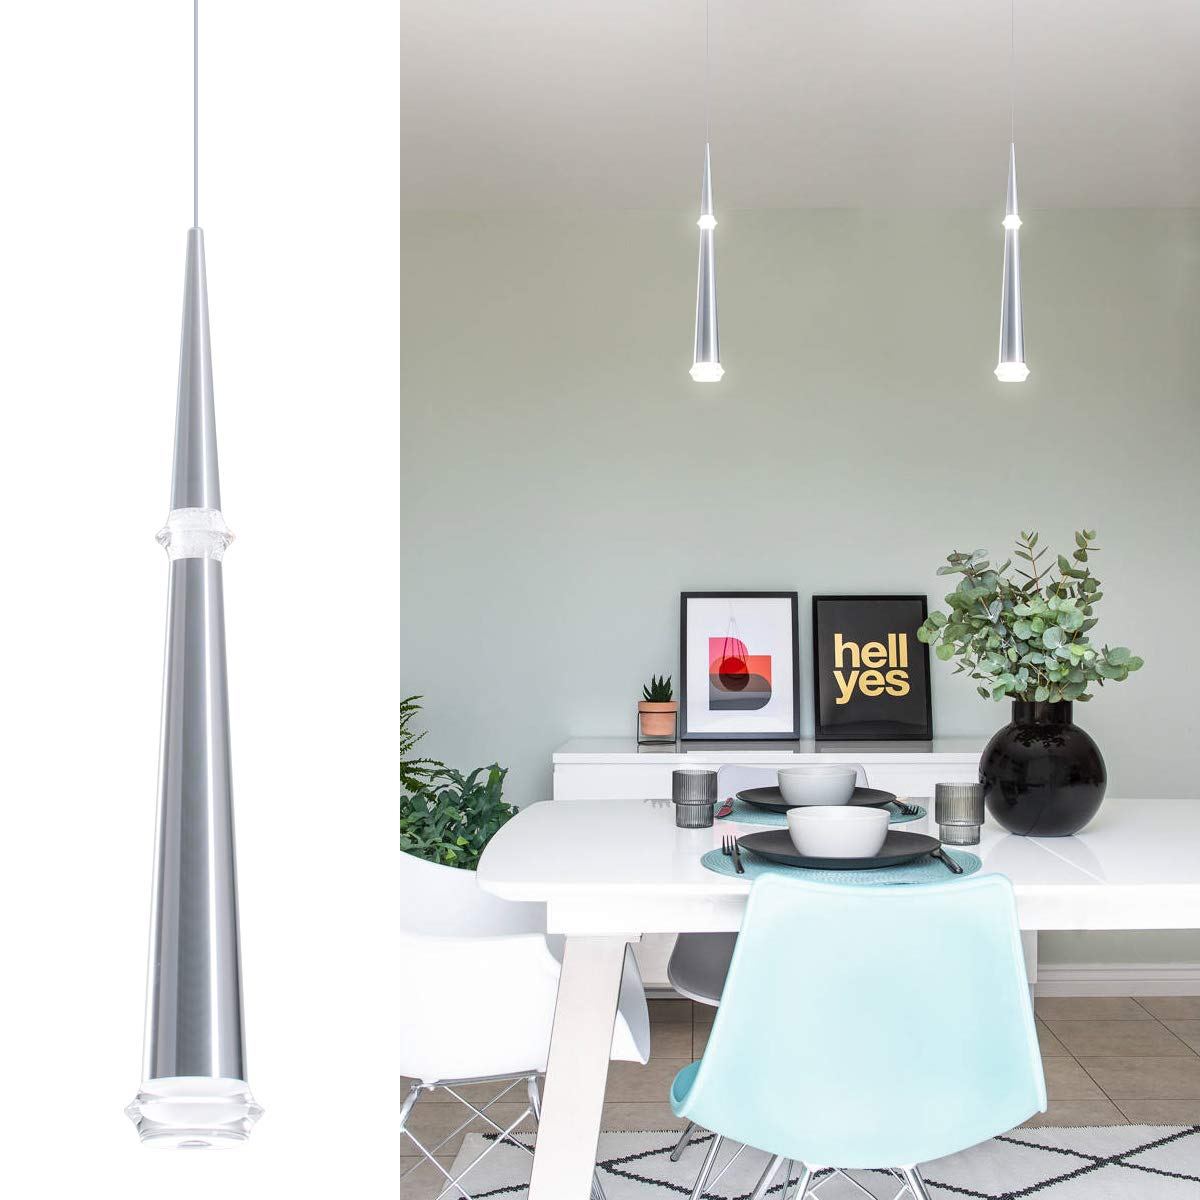 Bewamf Modern Mini Pendant Light Adjustable Led Cone Pendant Lighting With Silver Brushed Chrome Finish Acrylic Shade For Kitchen Island 7w Warm White 3000k Upgrade Version 1 Pack Buy Online In Aruba At Aruba Desertcart Com